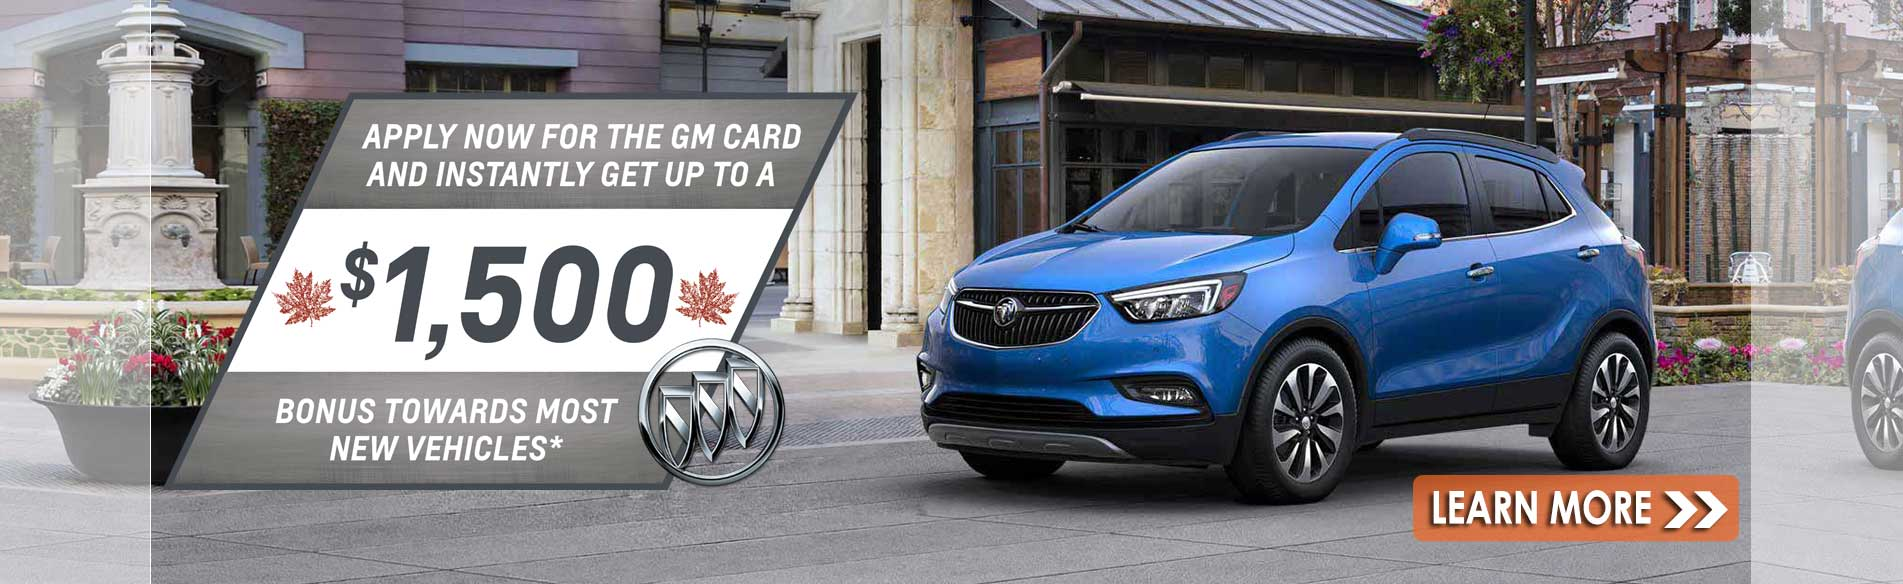 Great deals on new Buick cars and SUVs in Georgetown Ontario at Georgetown Buick